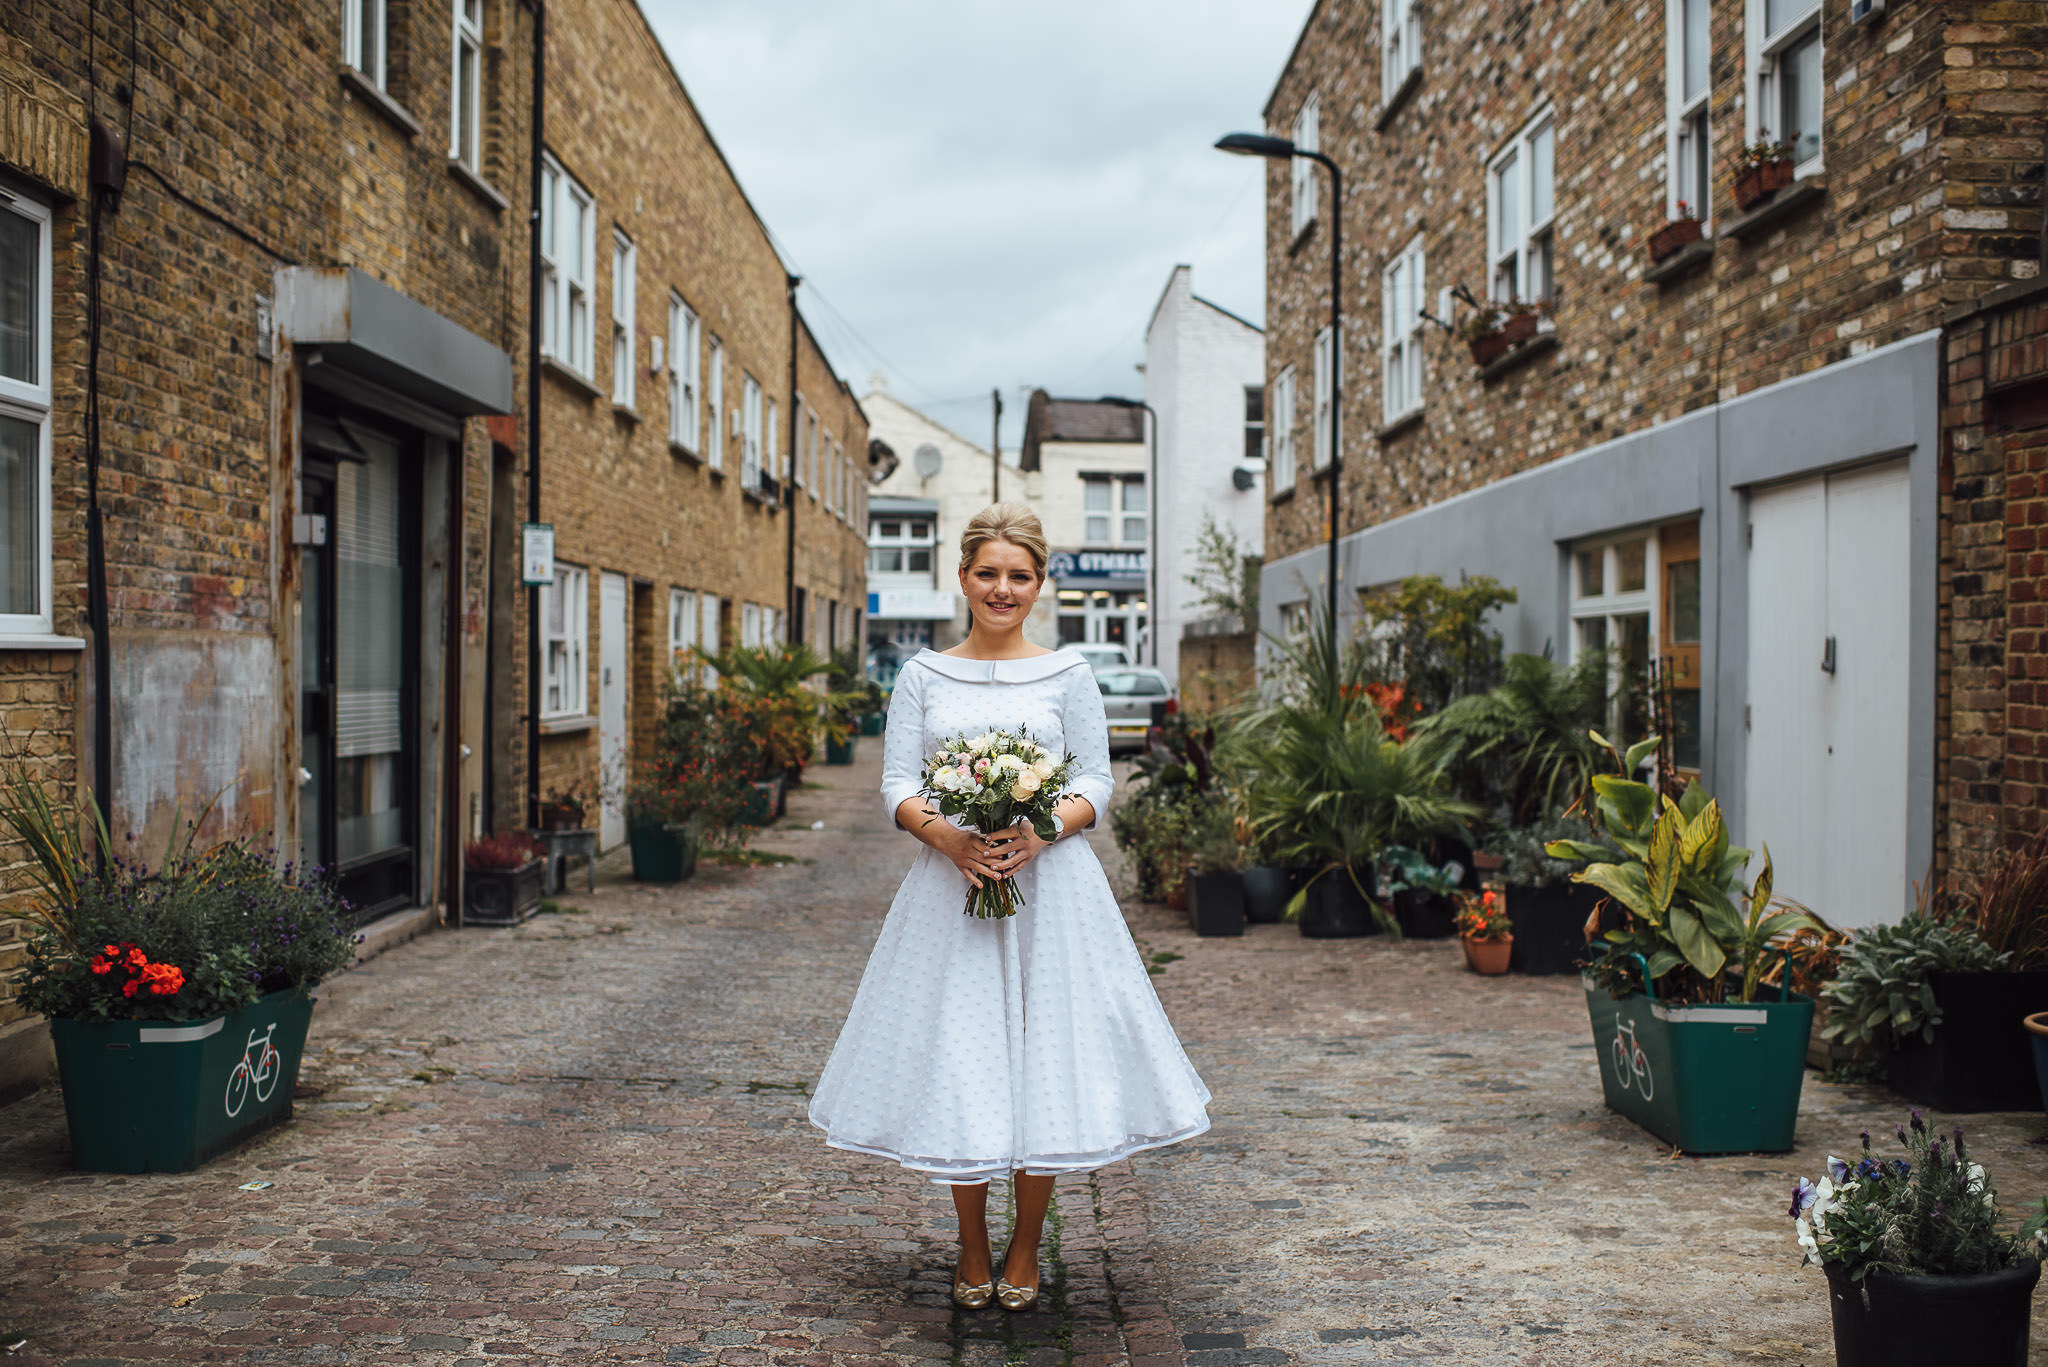 vintage candy anthony dress in stoke newington town hall wedding by creative and alternative london wedding photographer the shannons photography